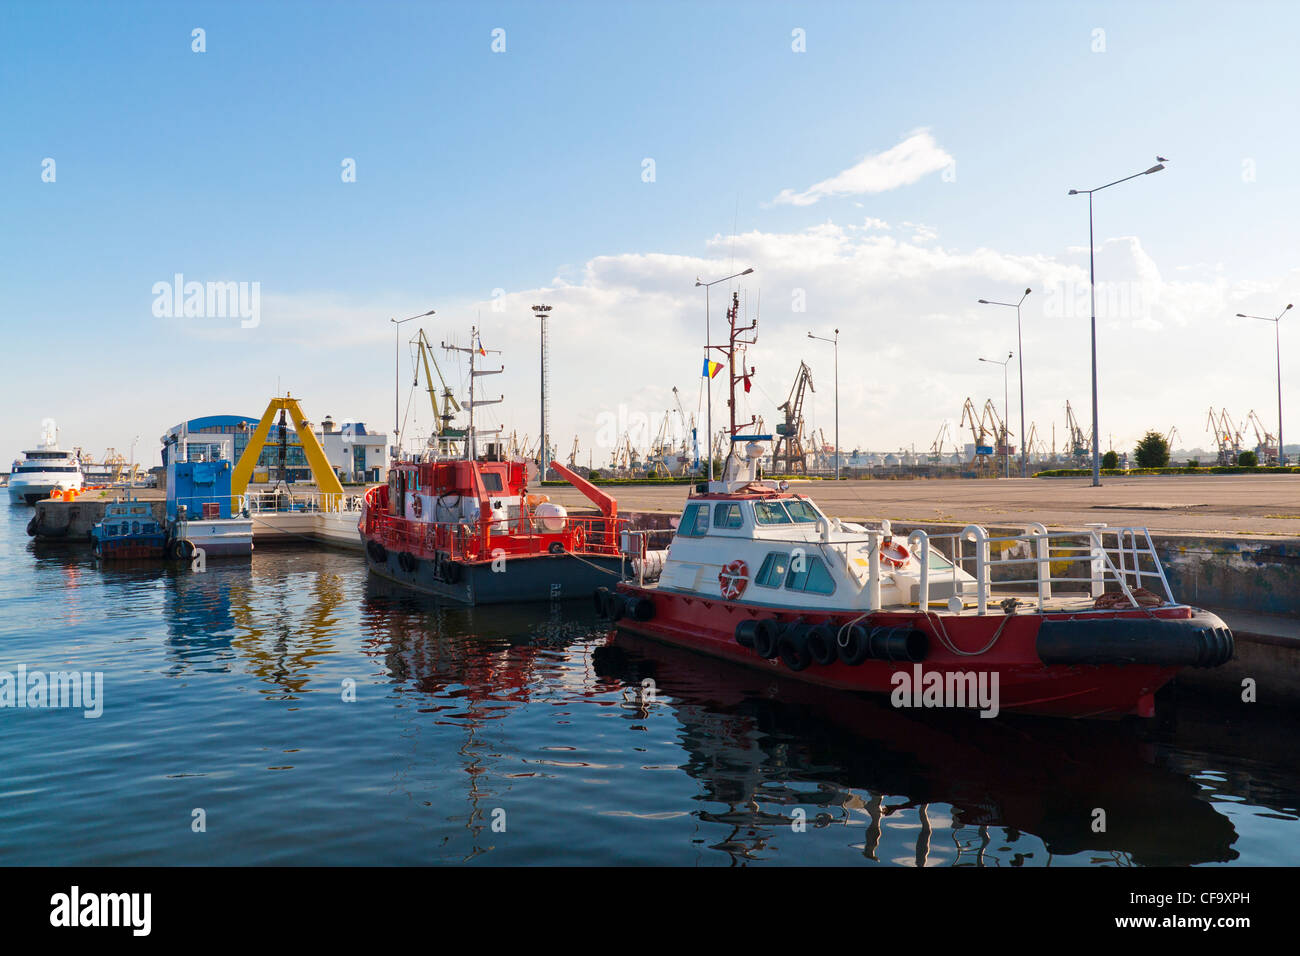 Two anchored towboats in port. - Stock Image